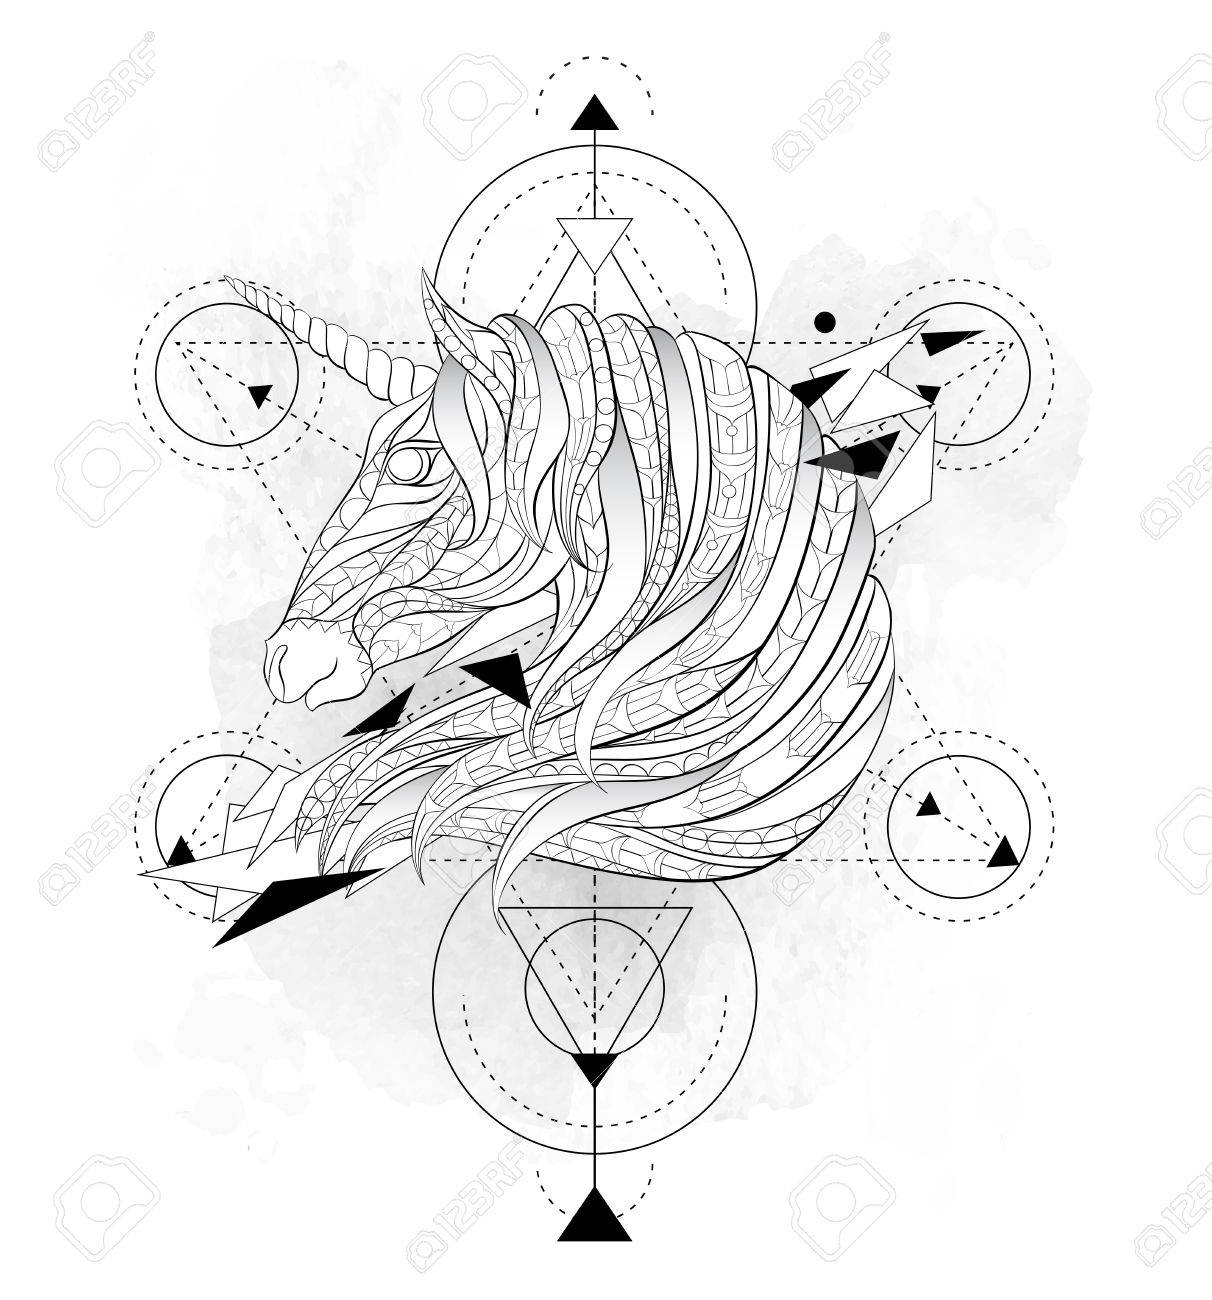 Patterned Head Of The Unicorn With Geometry On Grunge Background Space Horse Tattoo